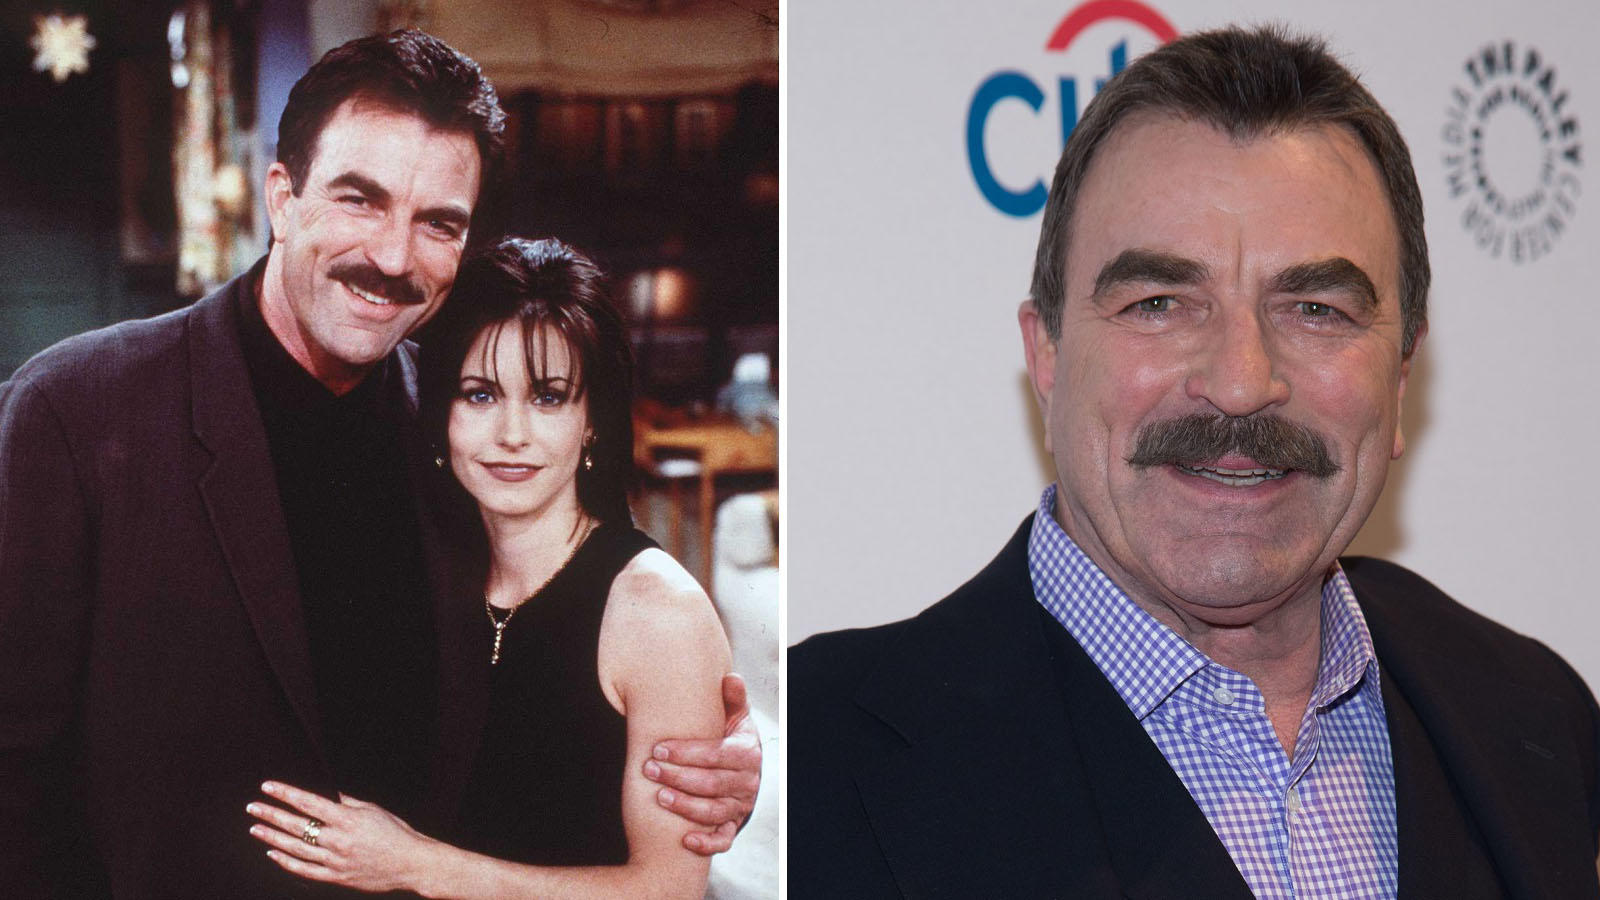 Tom Selleck (Bright/Kauffman/Crane Productions / Getty Images)